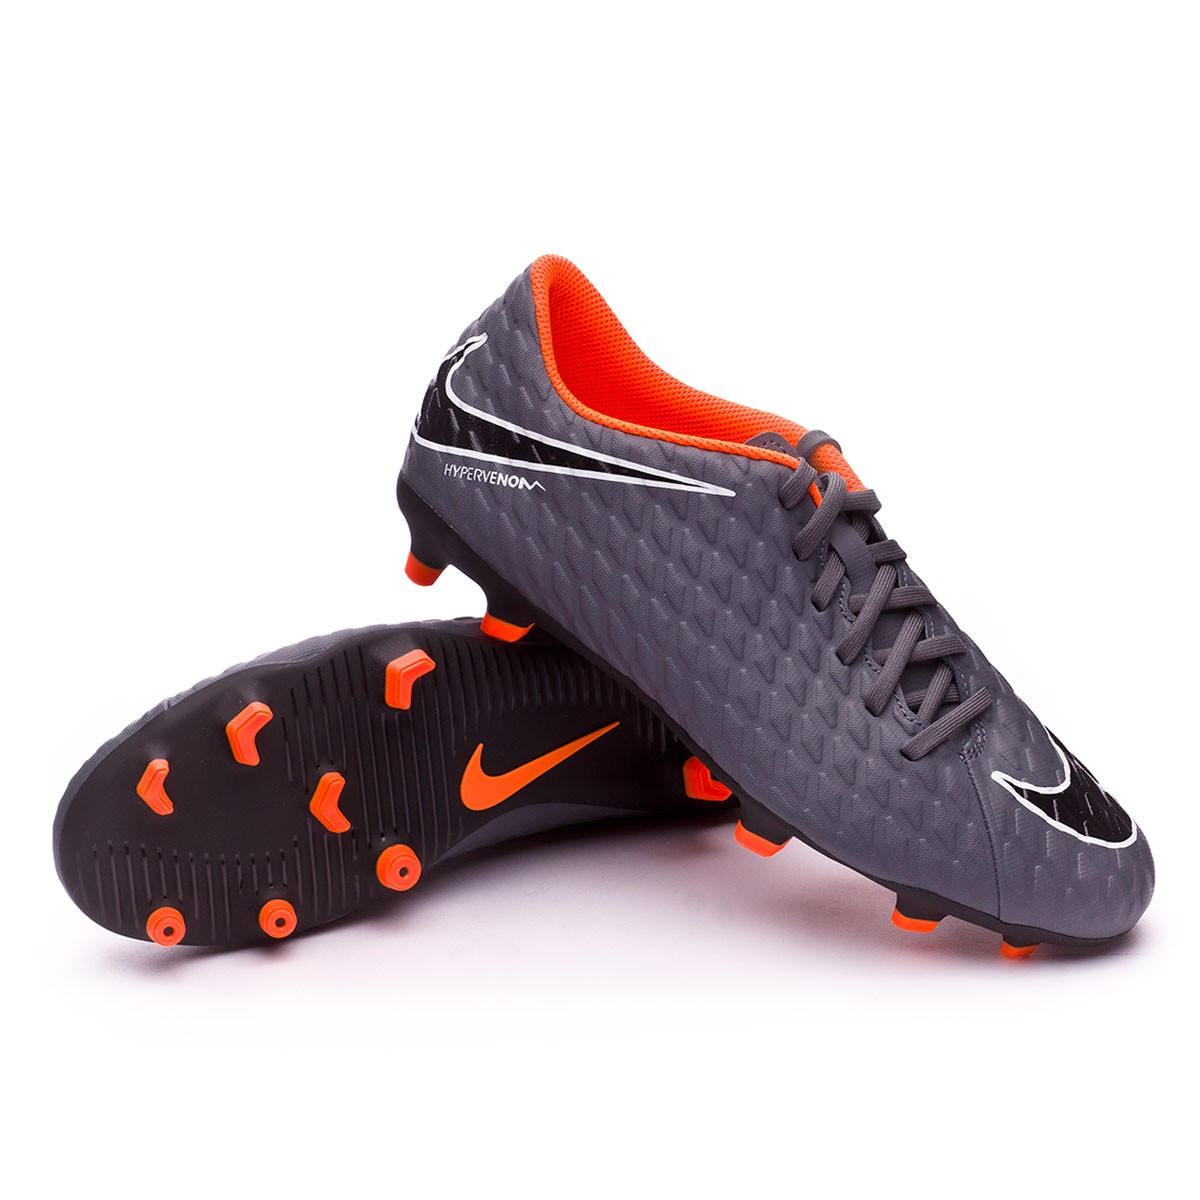 36c34ada438 Boot Nike Hypervenom Phantom III Club FG Dark grey-Total orange ...